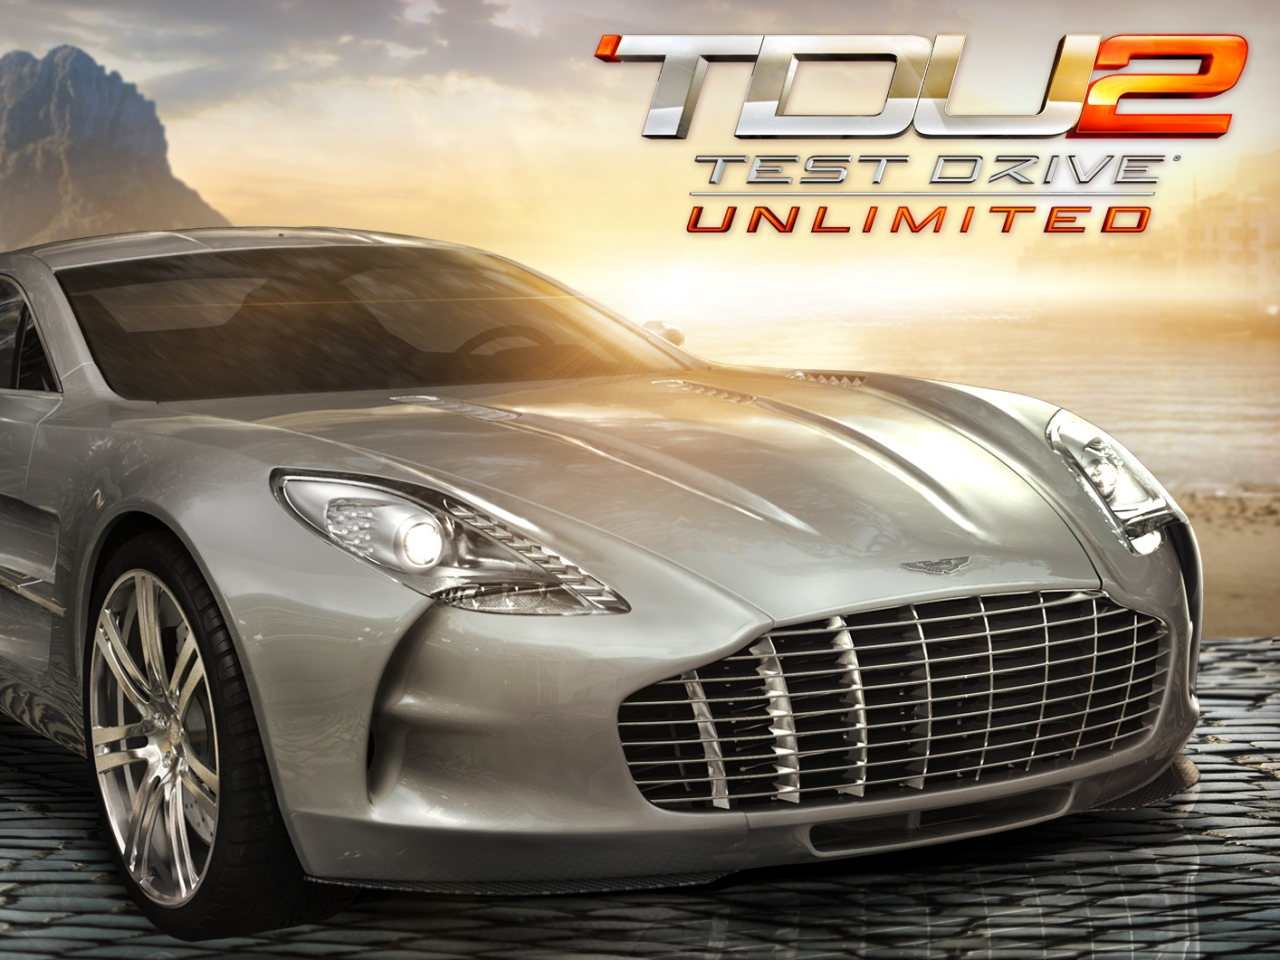 11 Test Drive Unlimited 2 HD Wallpapers Backgrounds  - test drive unlimited wallpapers